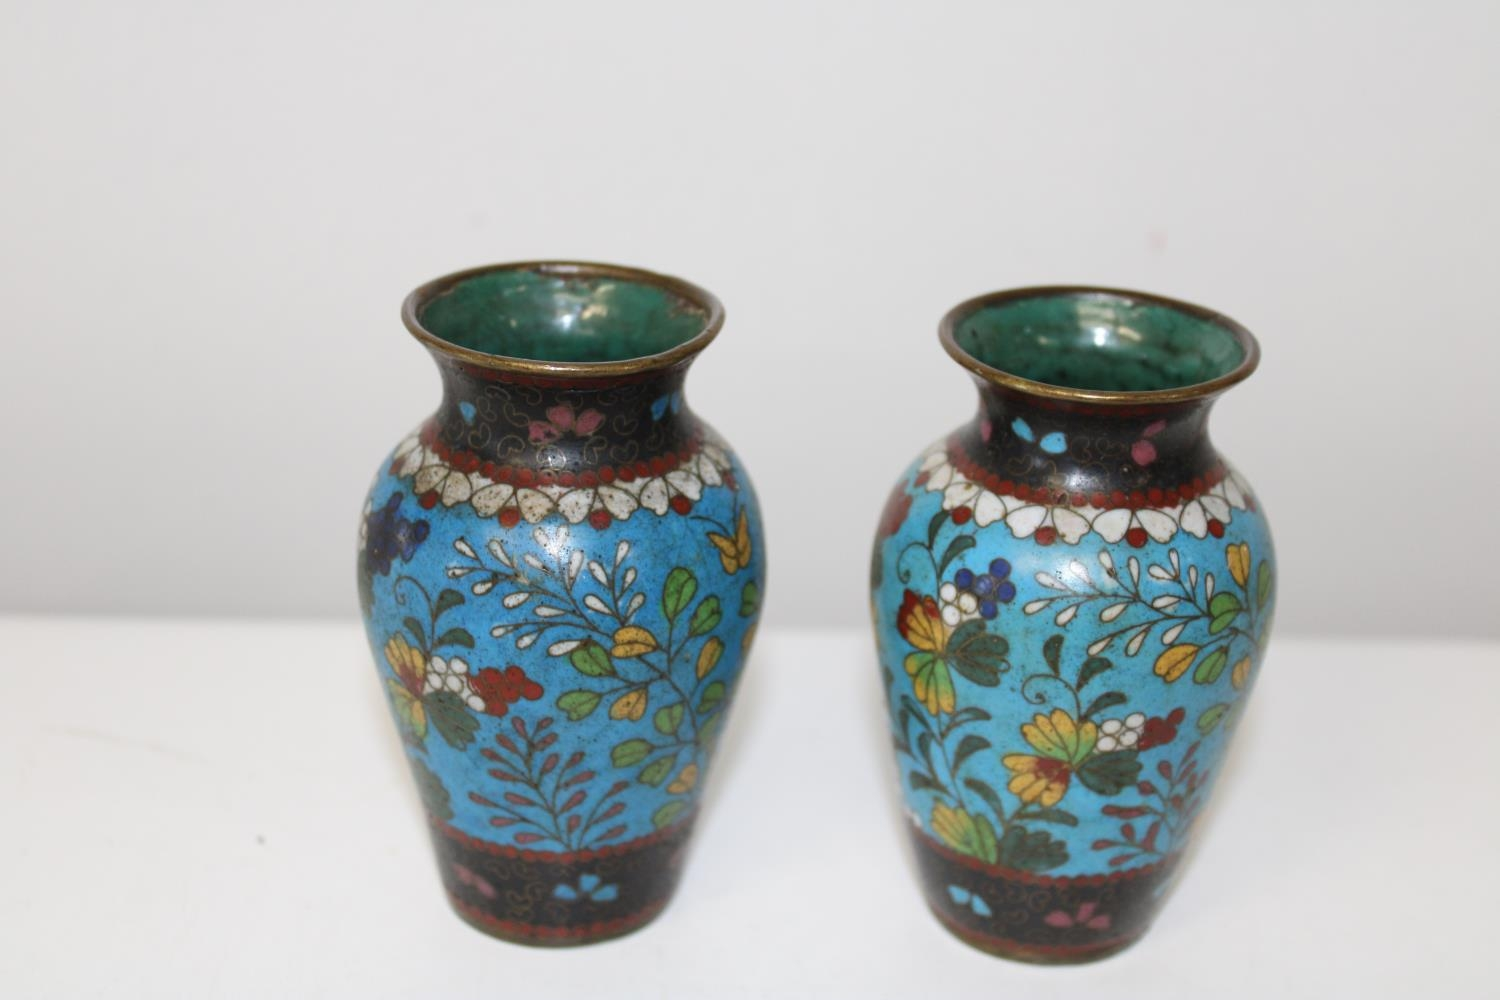 A small pair of 19th century Chinese cloisonne vases in good condition (sold as seen) Height 10cm